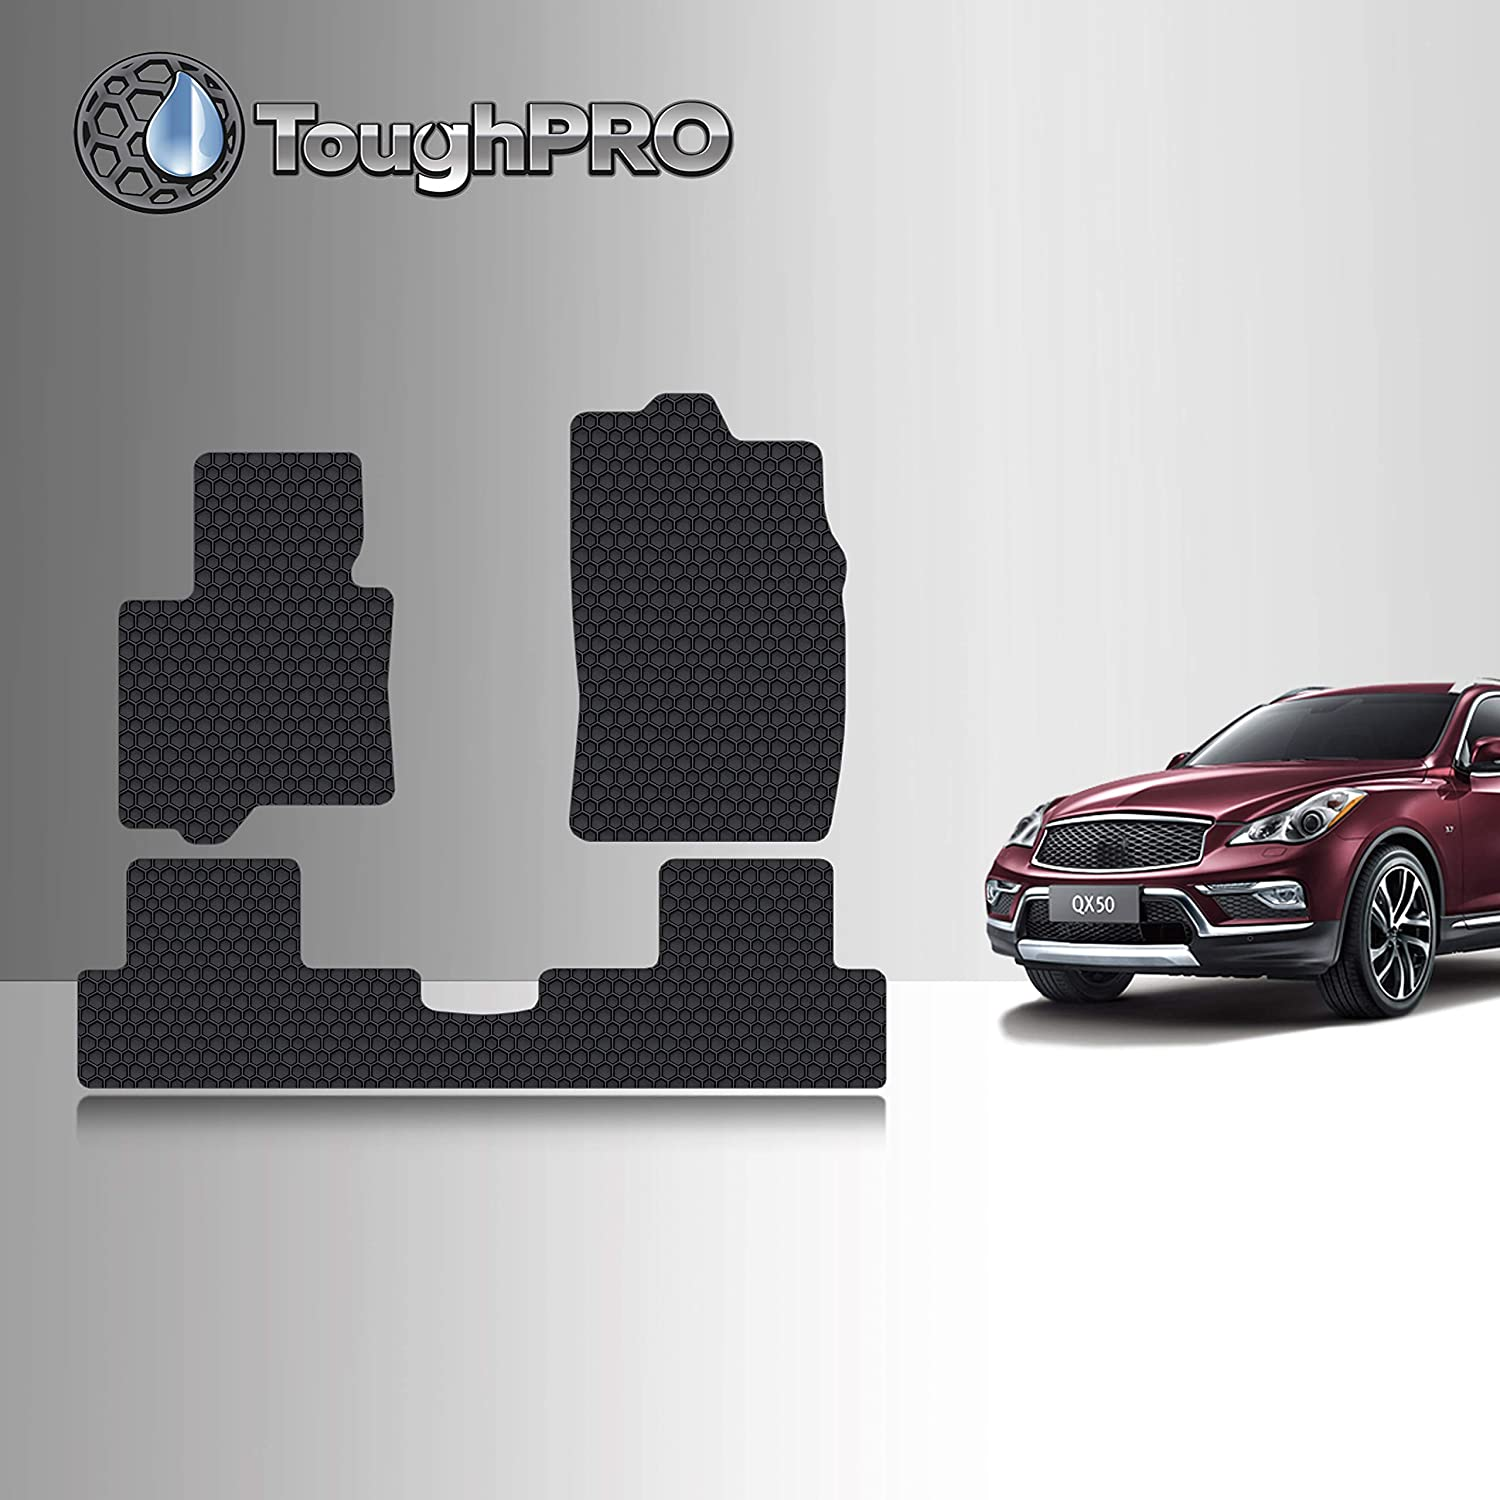 TOUGHPRO Floor Mat Accessories Set (Front Row + 2nd Row) Compatible with Infiniti QX50 - All Weather - Heavy Duty - (Made in USA) - Black Rubber - 2016, 2017…